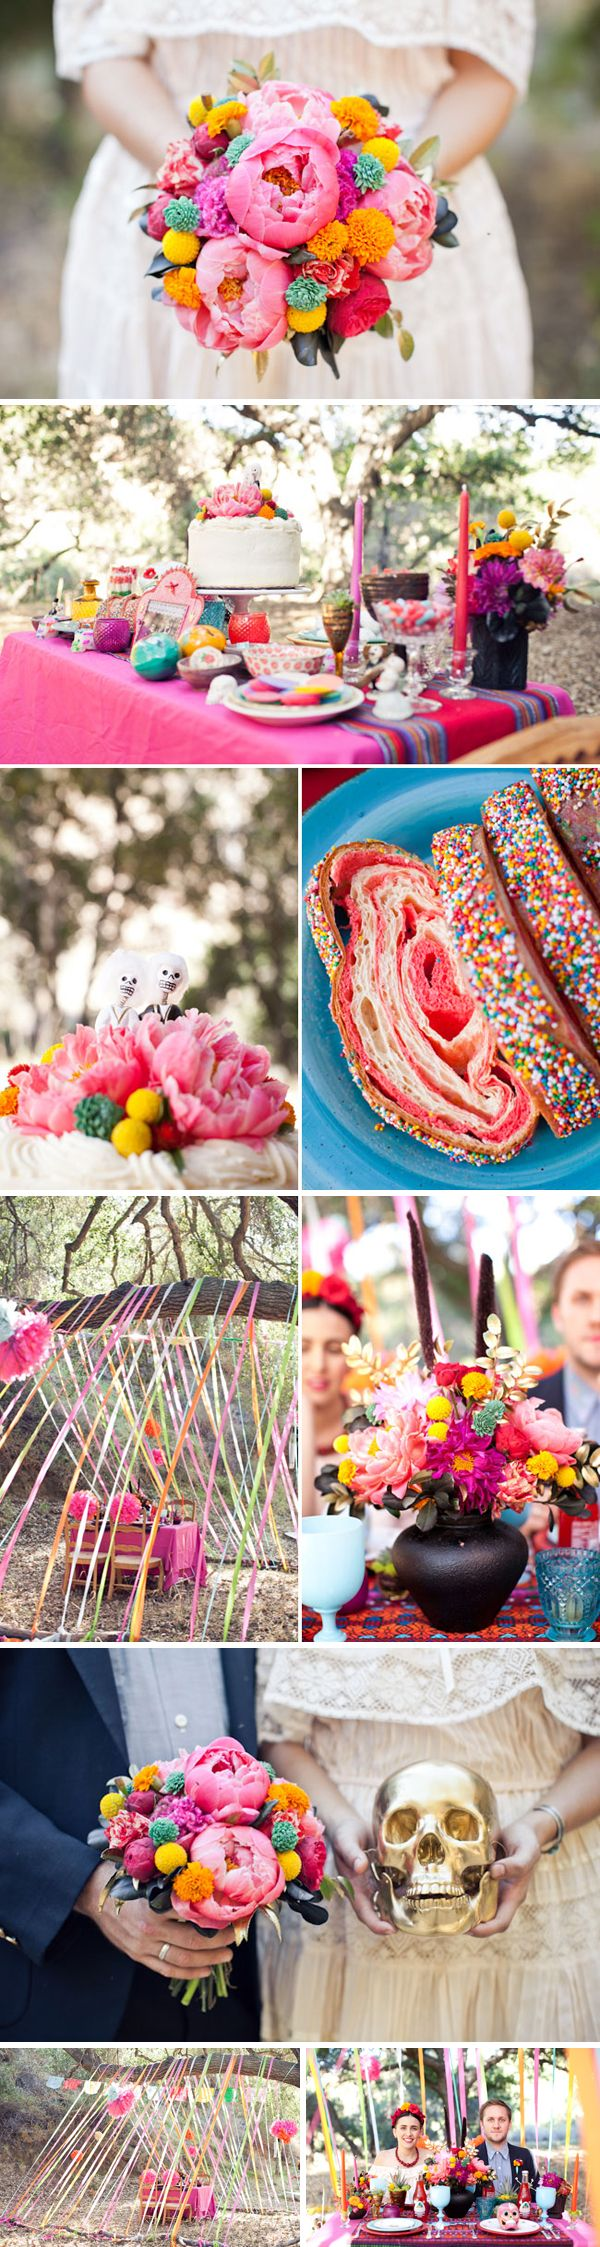 Cinco de Mayo Wedding Inspiration!